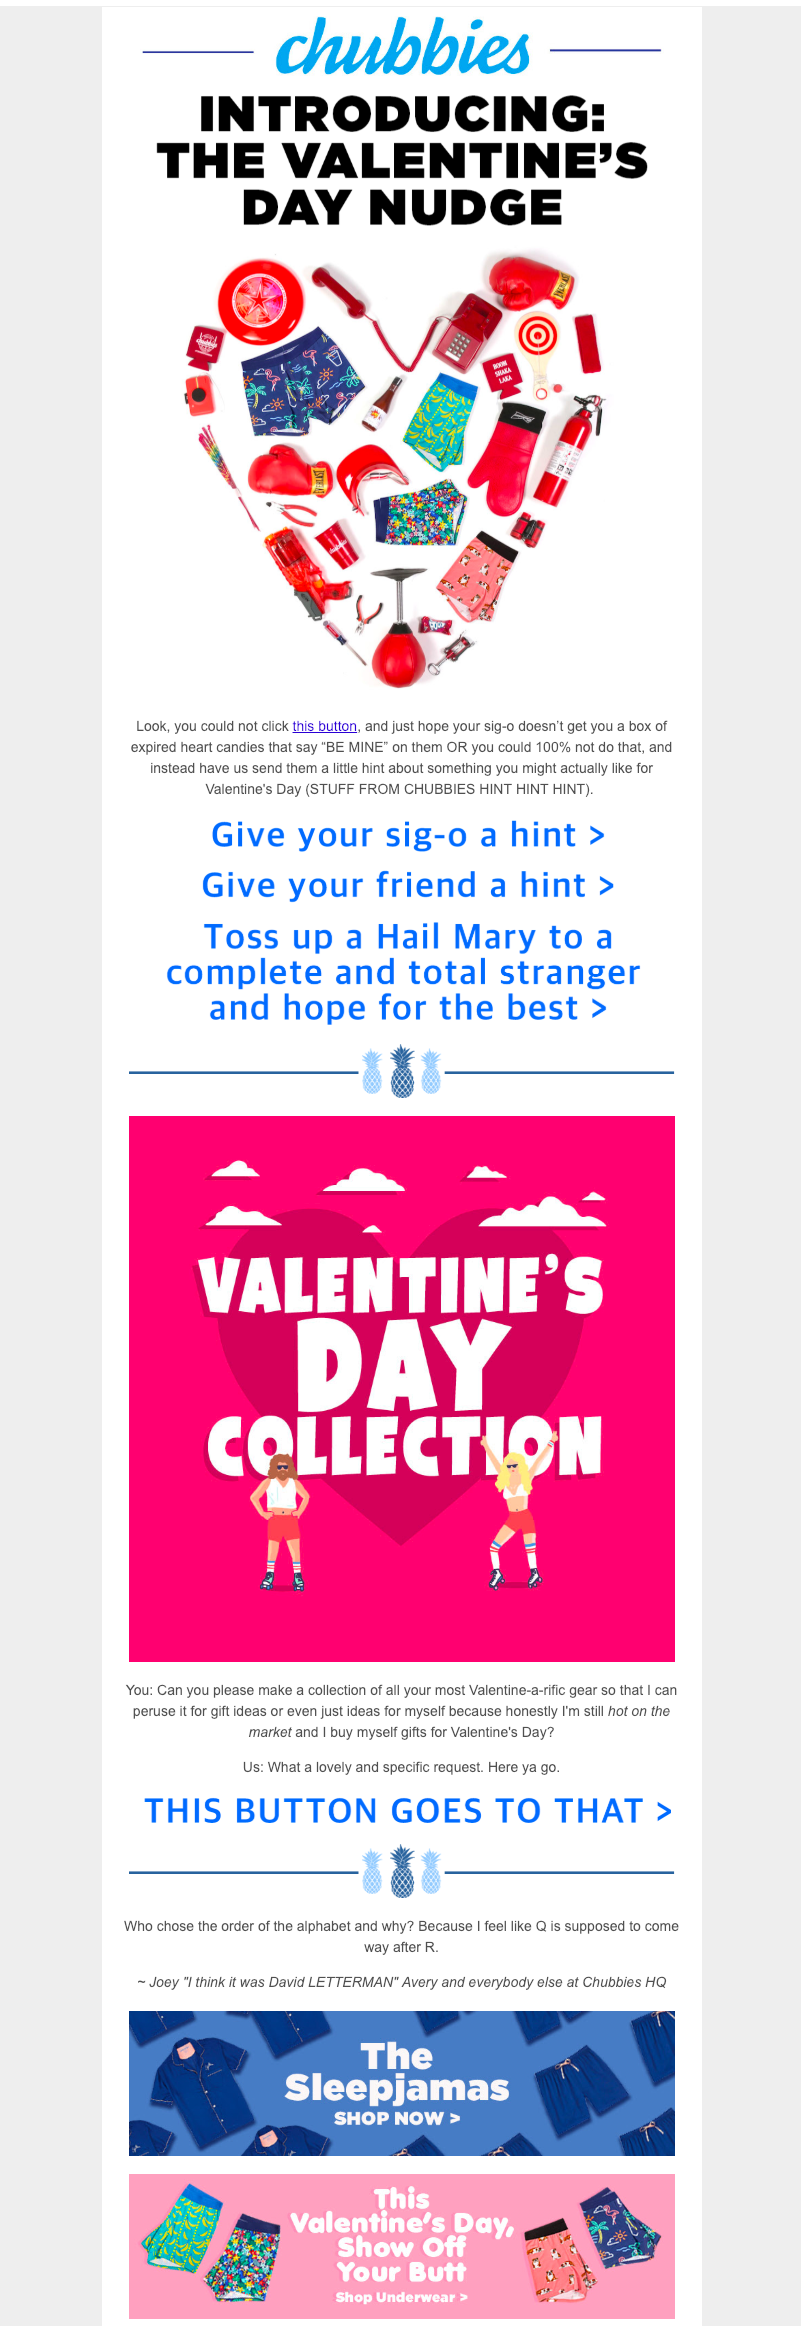 chubbies valentine's day email campaign